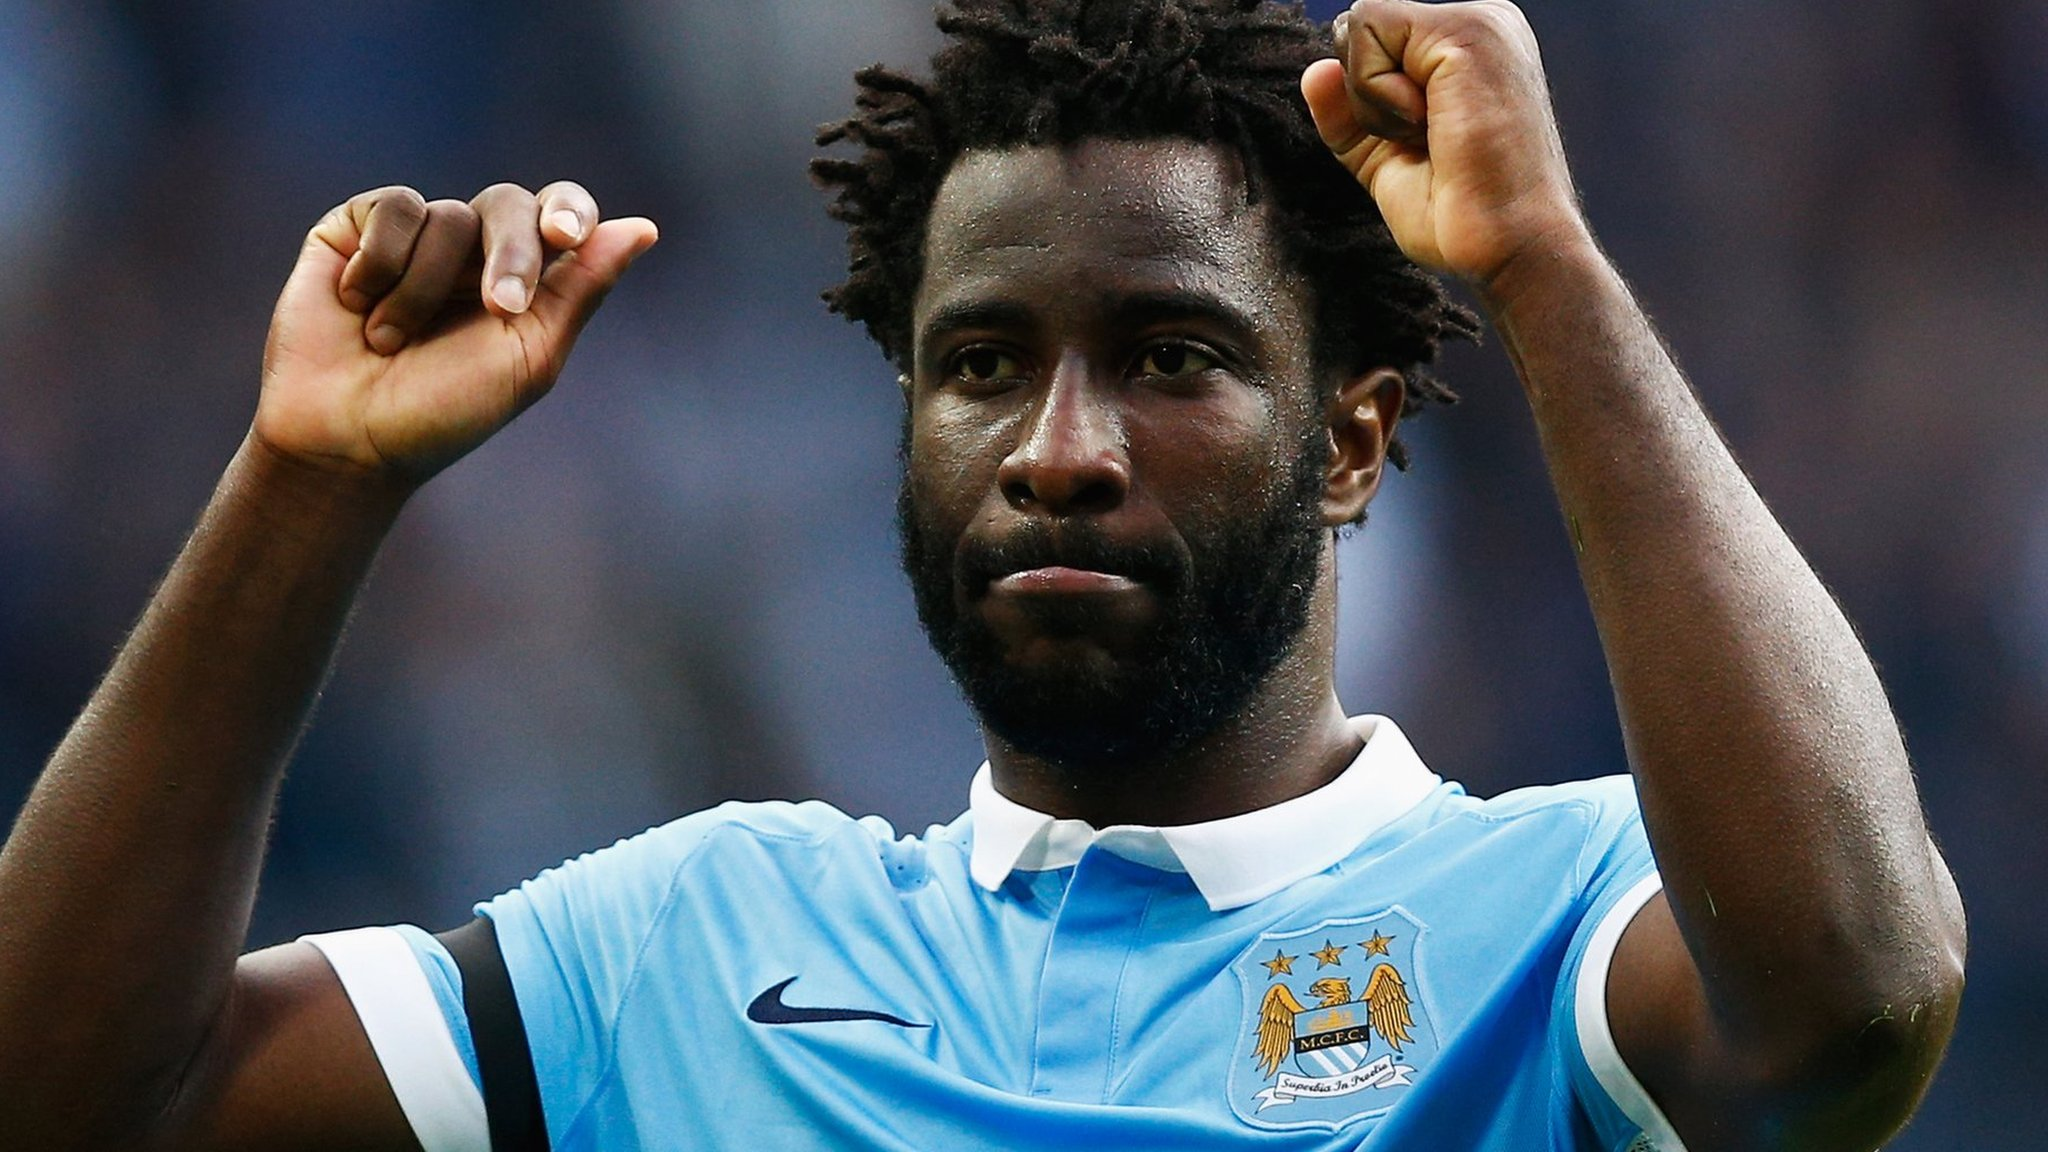 West Ham 'interested' in signing Man City's Bony